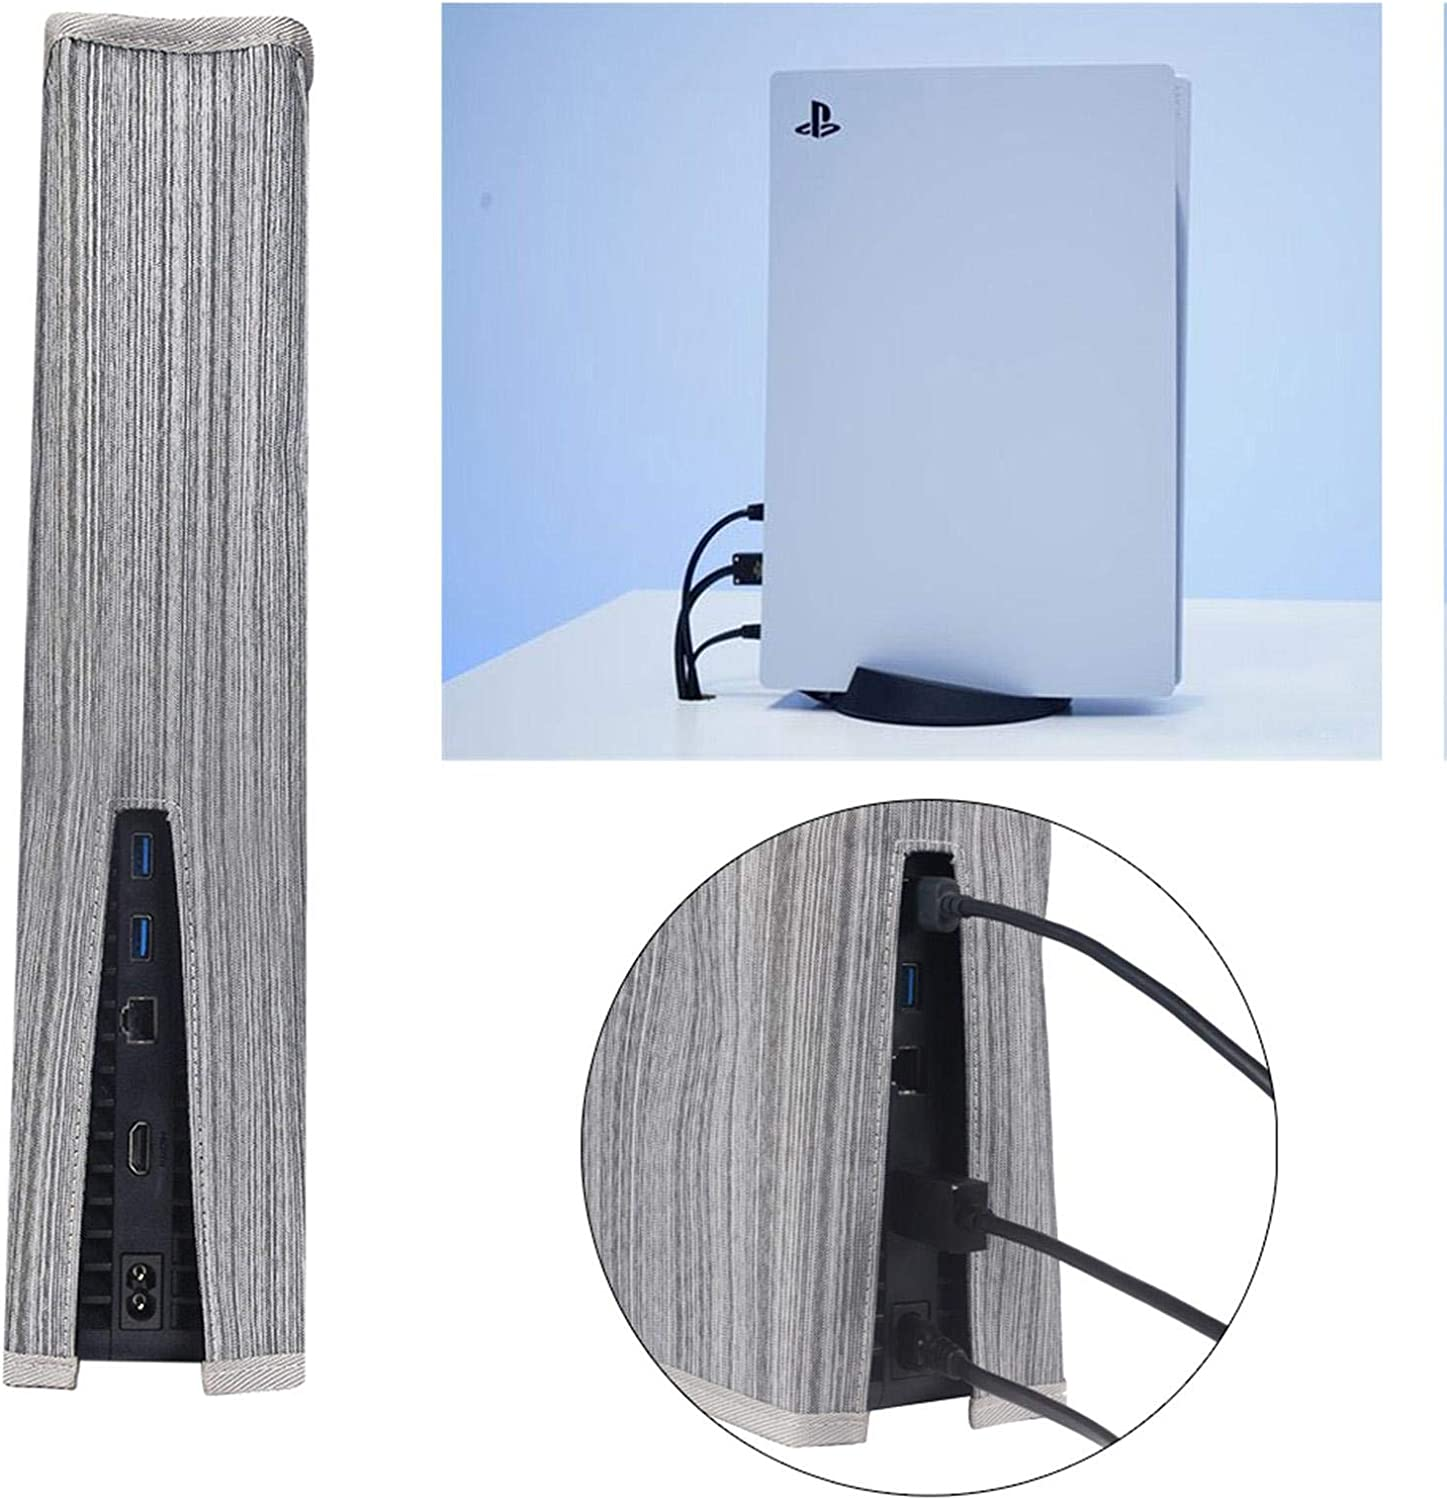 PS5 Console Dust Cover Custom Designed for Playstation 5 Console with Cable Port Precision Cut Protective Cover Case Lurdarin Dust Cover for PS5